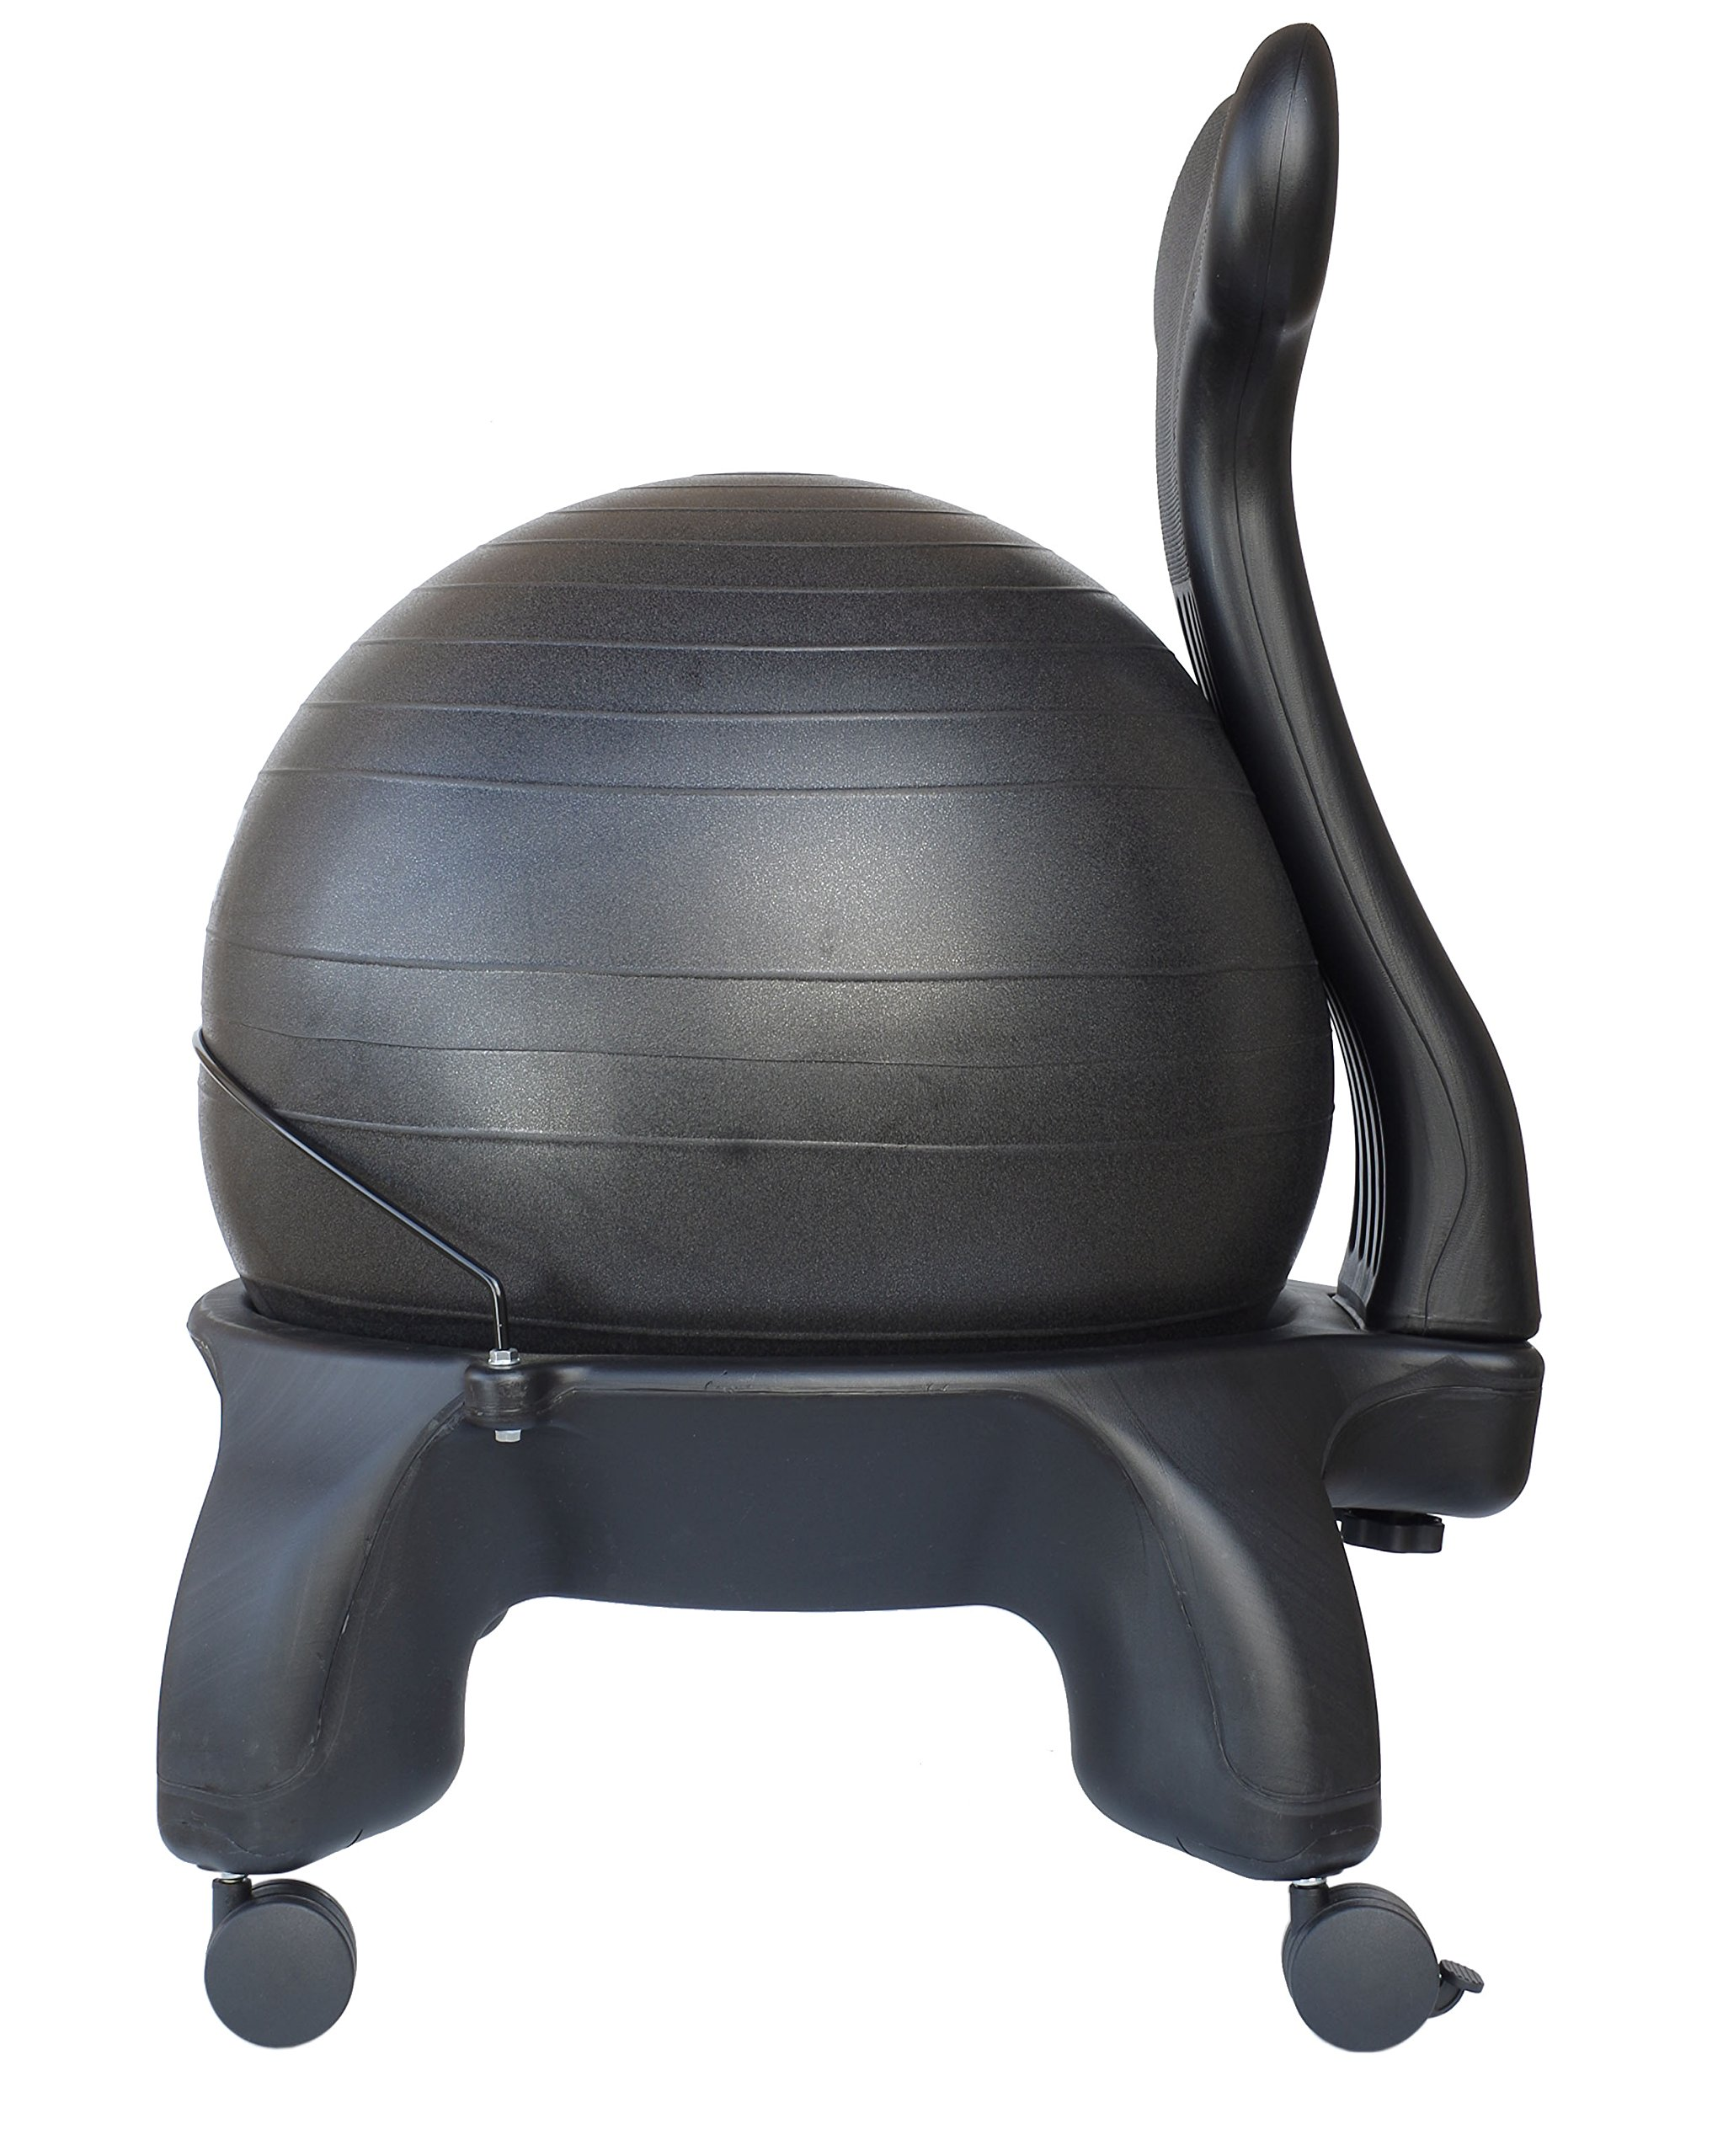 ball chair chairs office exercise watch fitness desk yoga youtube